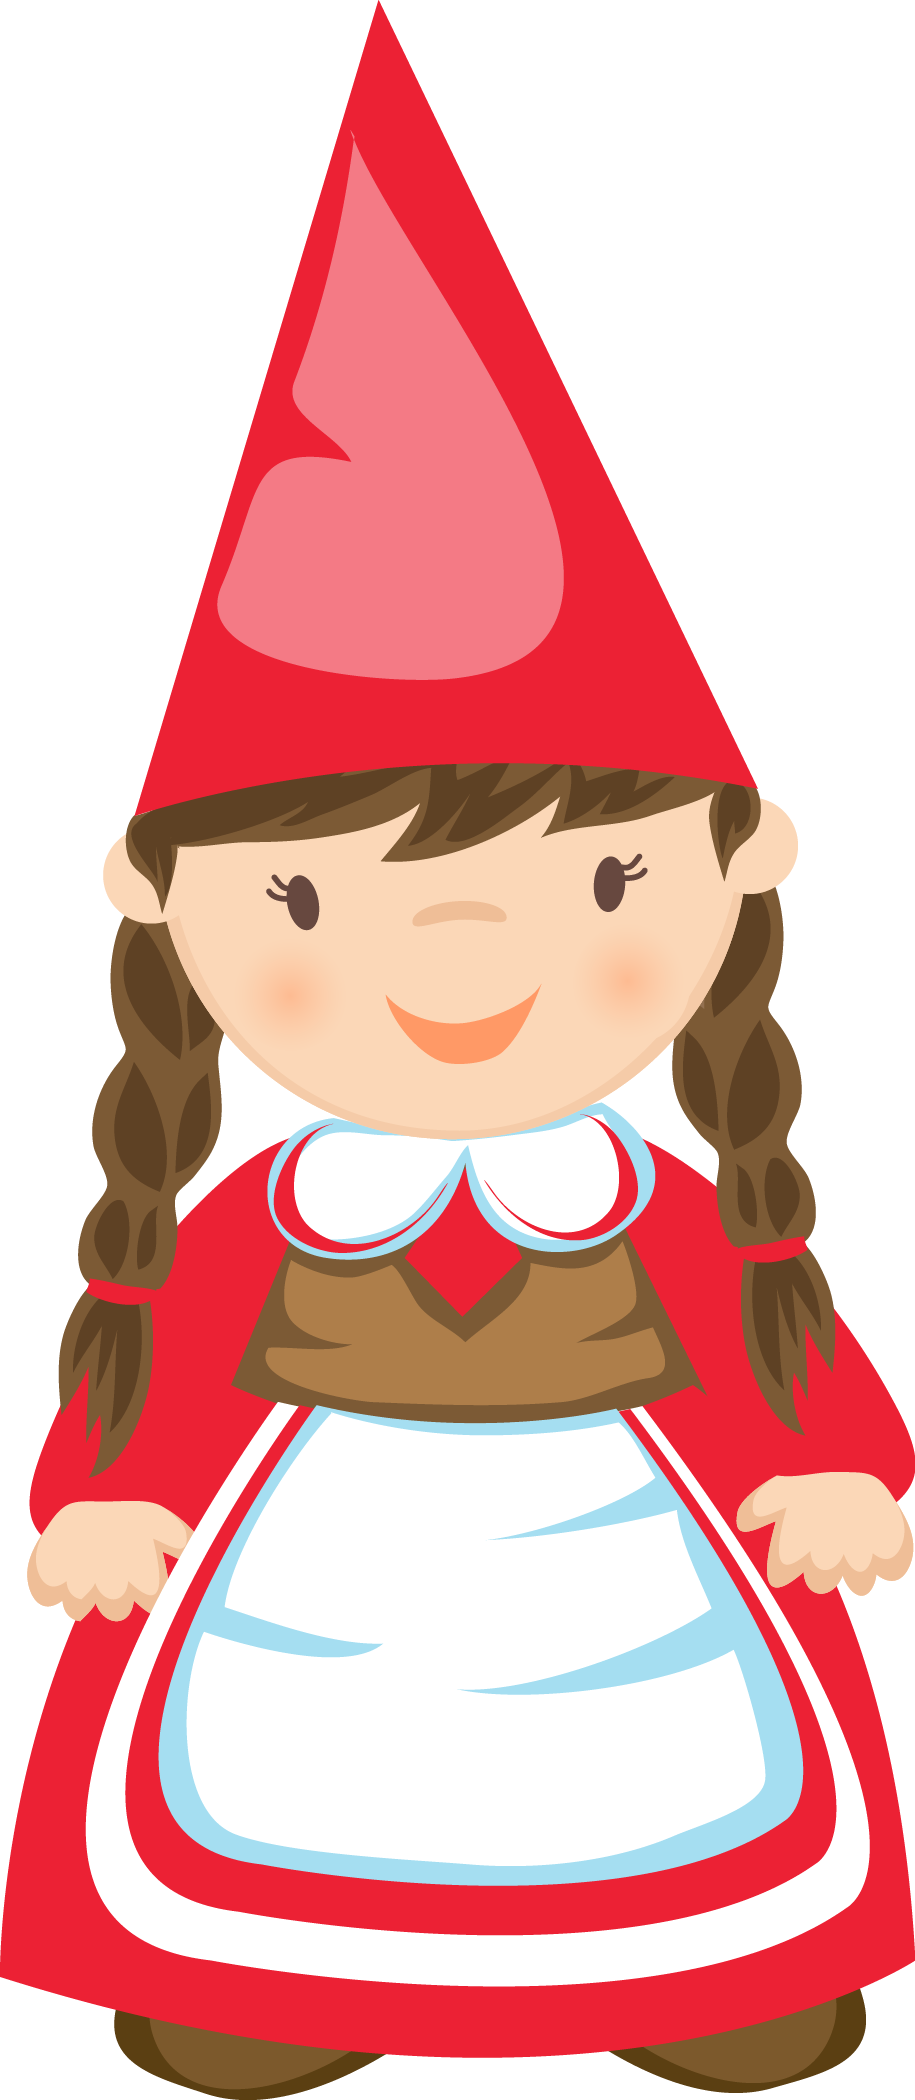 Friendly clipart friendly girl. What are my toddlers